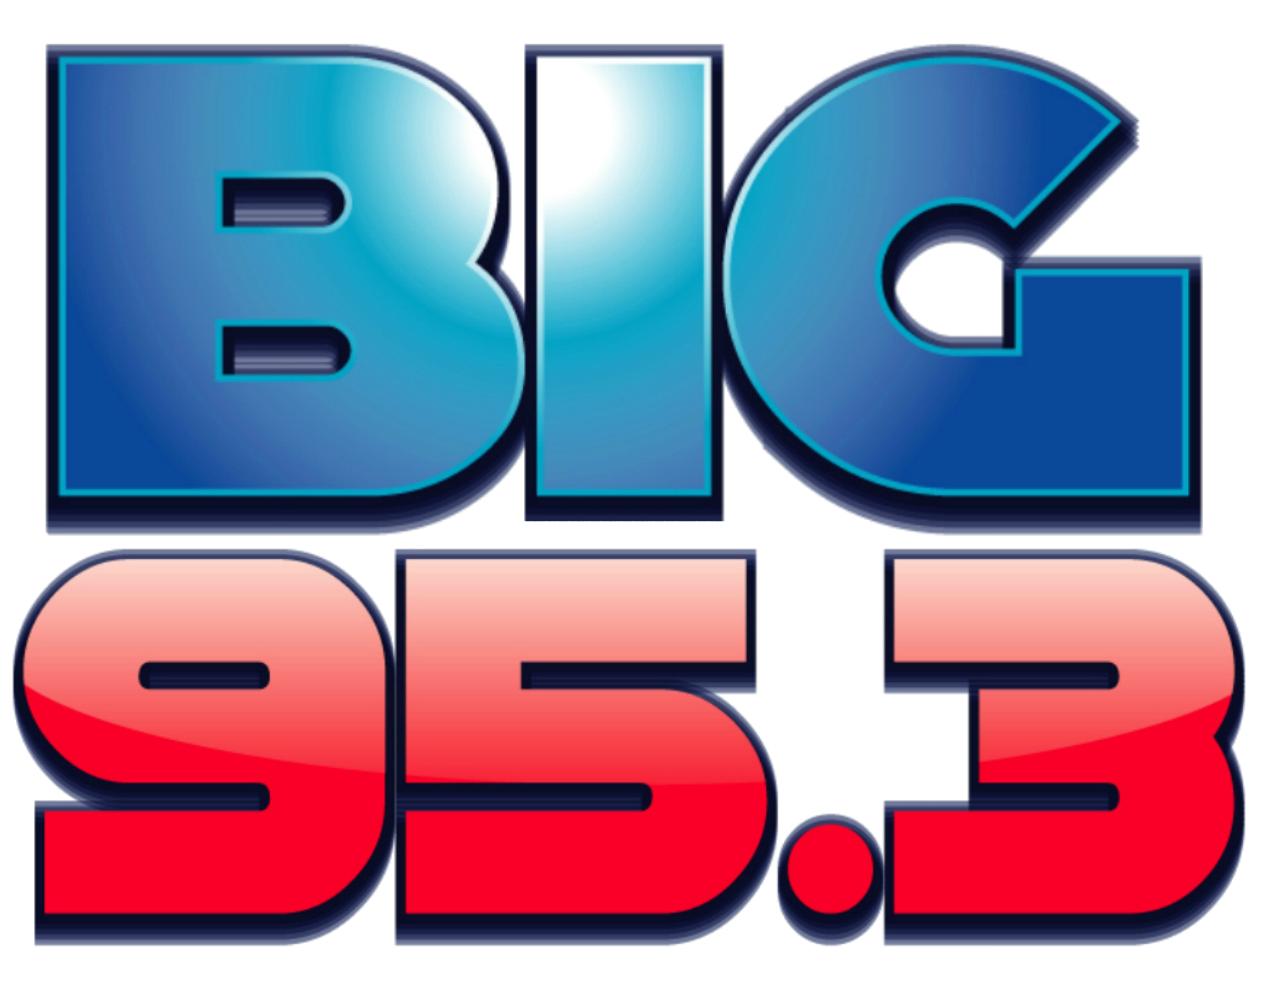 BIG LOGO B (STACKED) CLEAR BACKGROUND.png